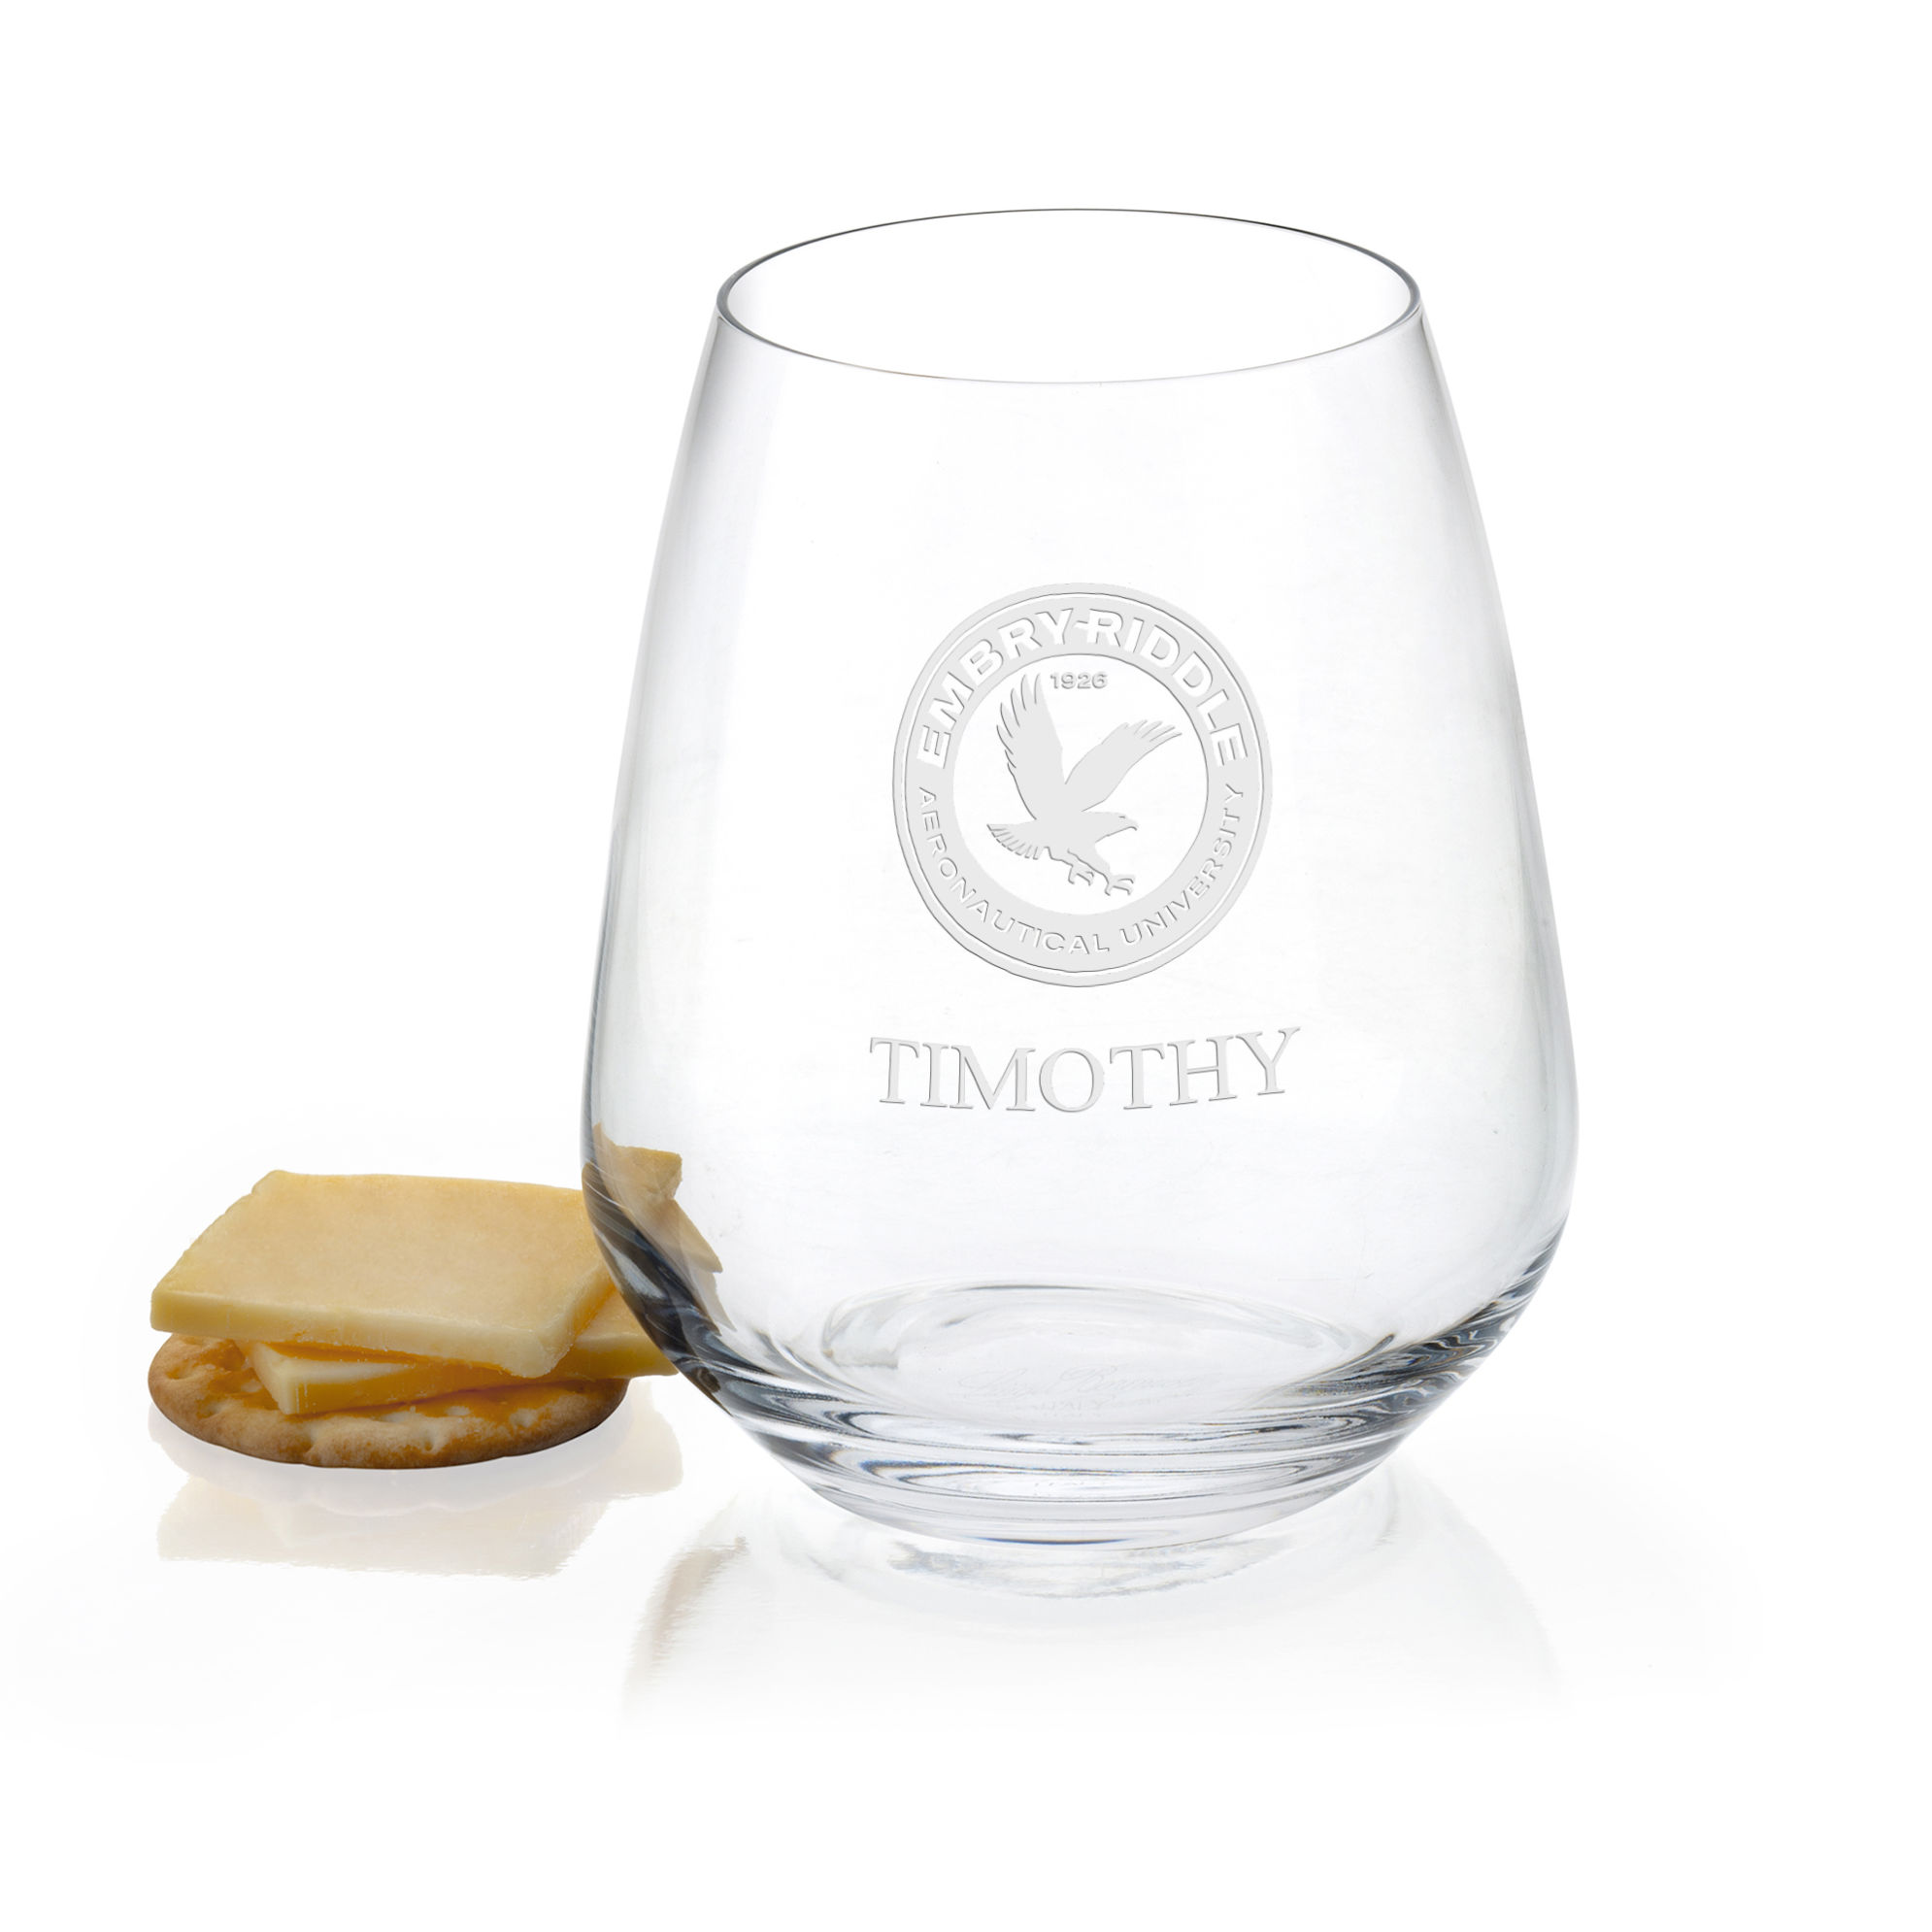 Embry-Riddle Stemless Wine Glasses - Set of 4